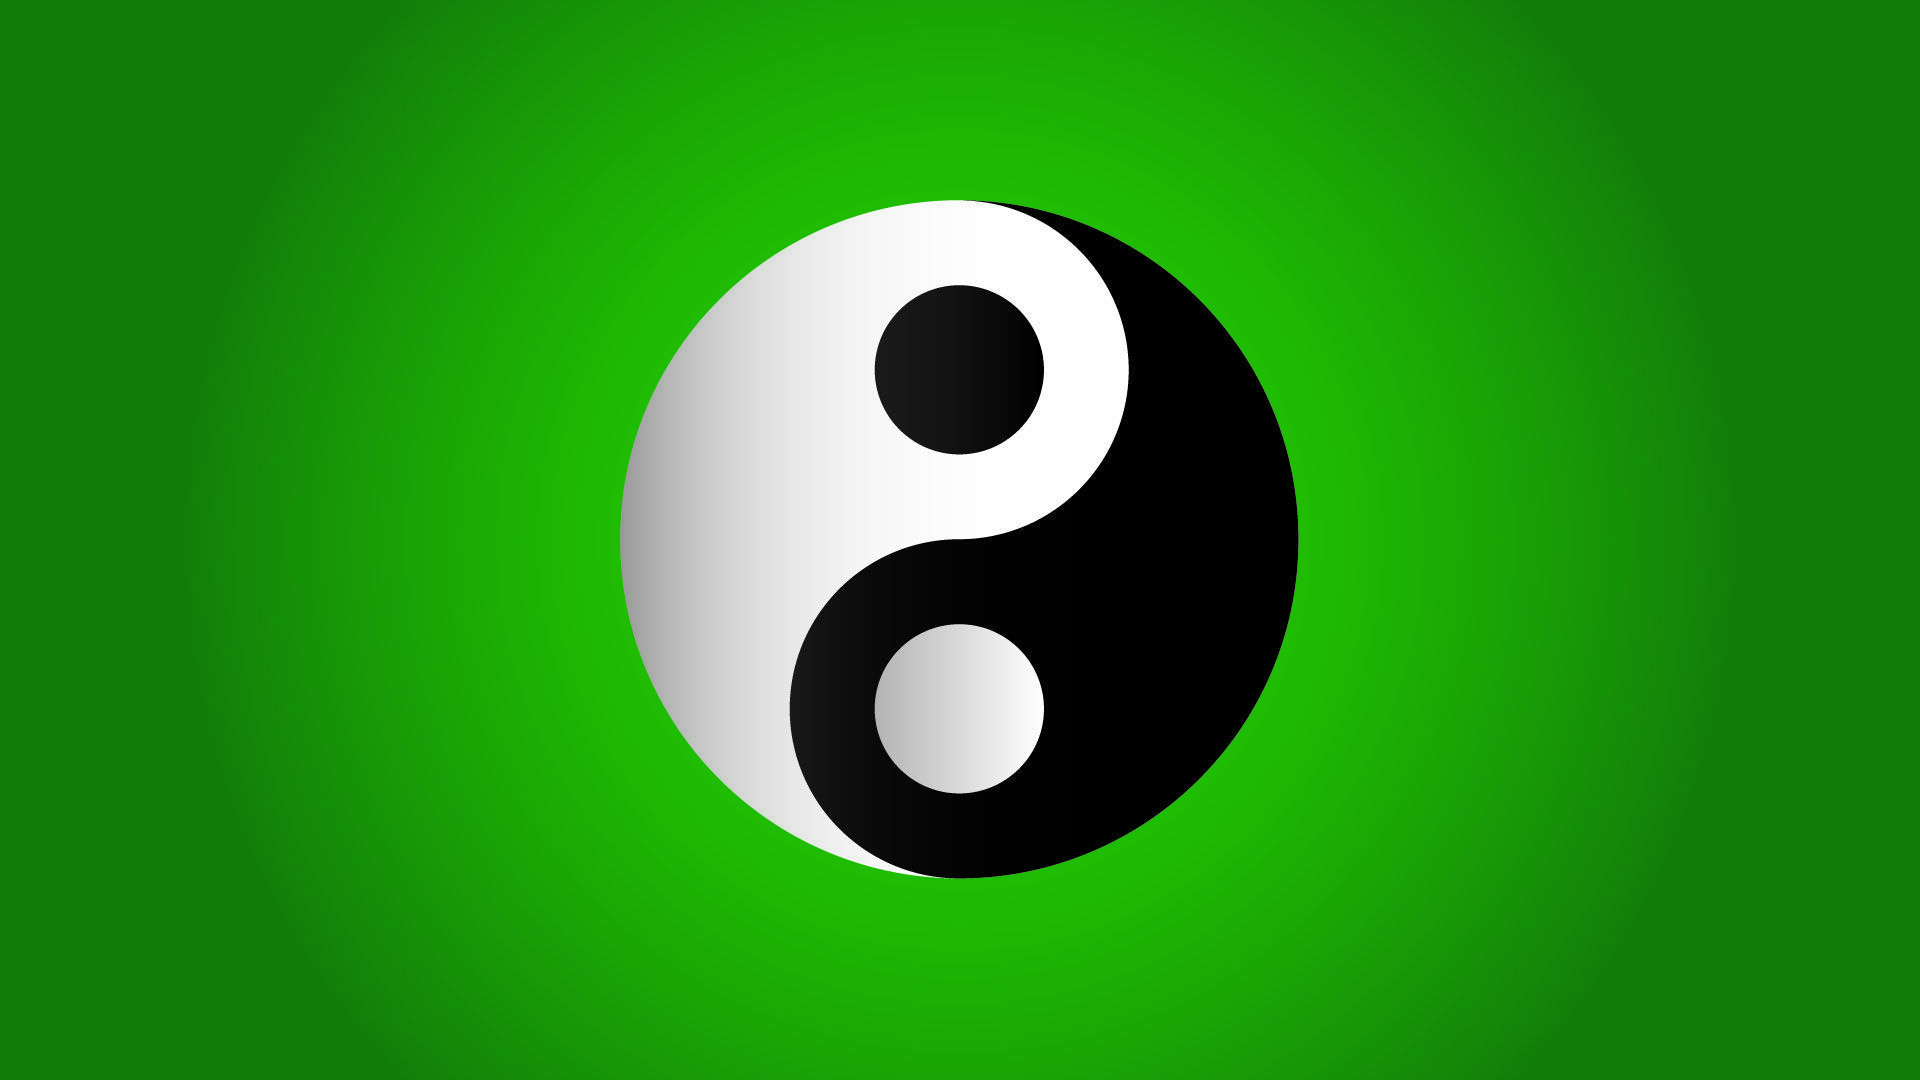 yin yang hd wallpapers backgrounds wallpaper 640×480 yin and yang